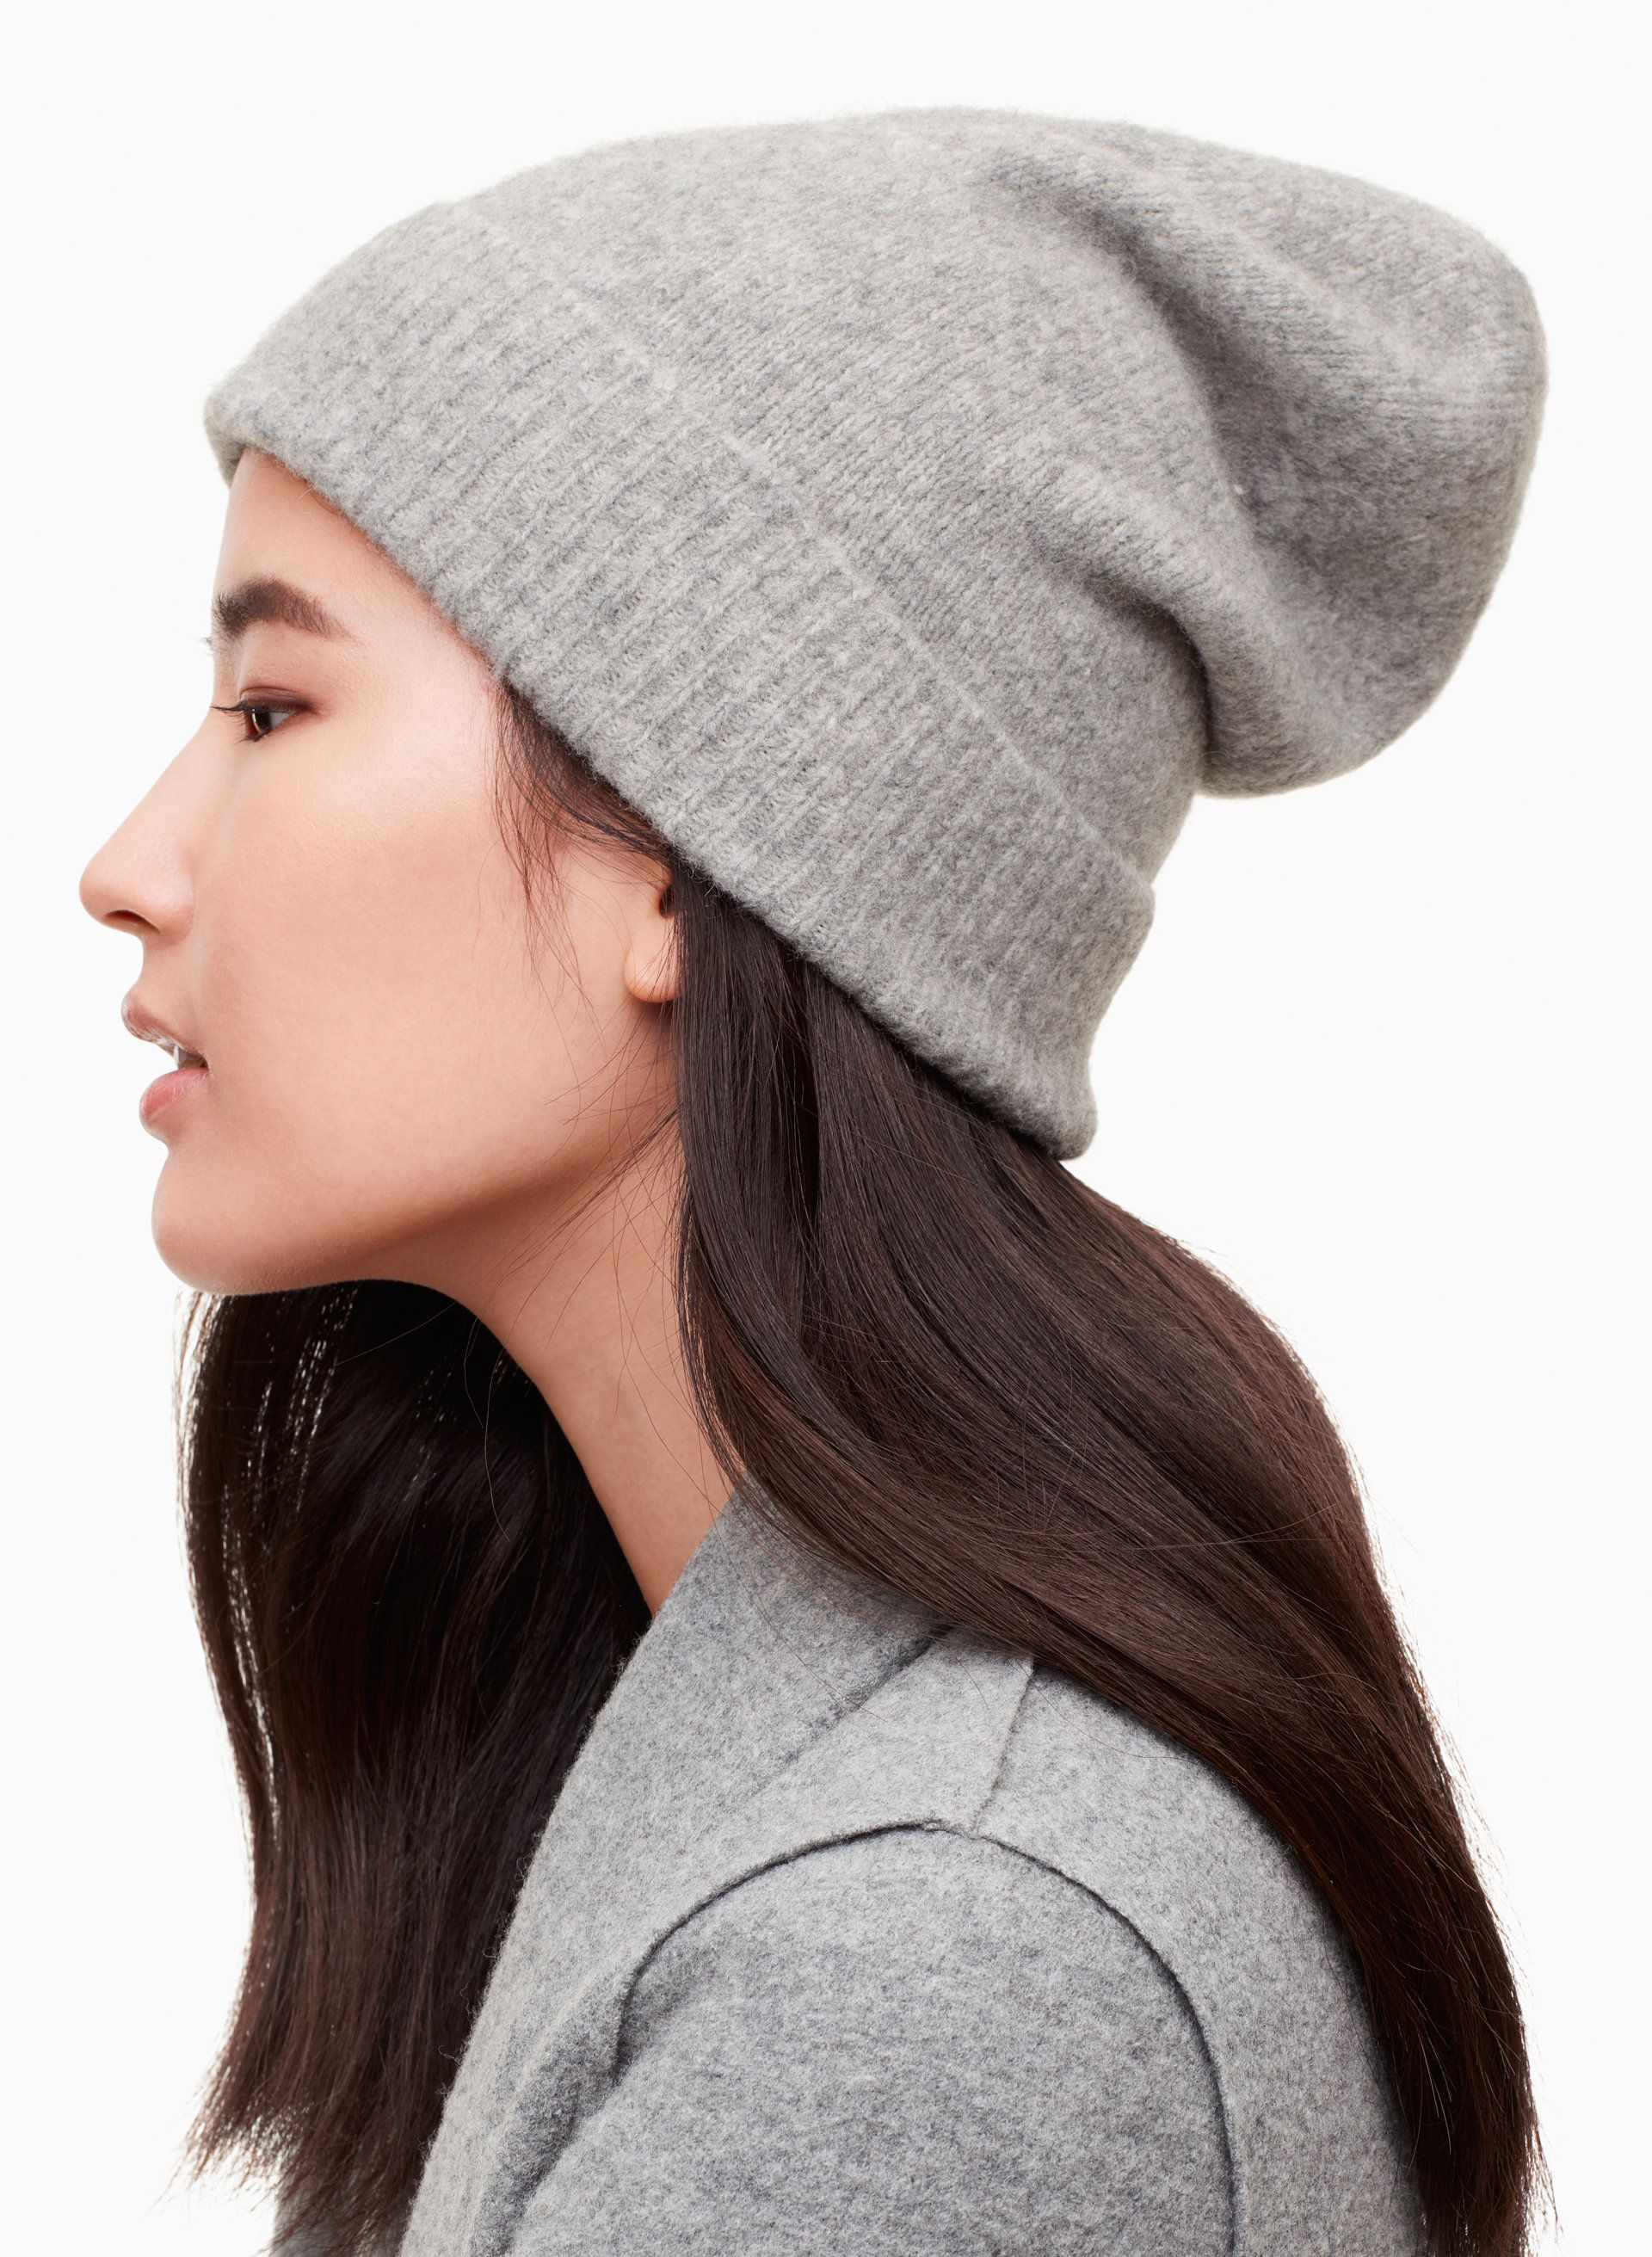 2019 year lifestyle- How to floppy wear knit hat